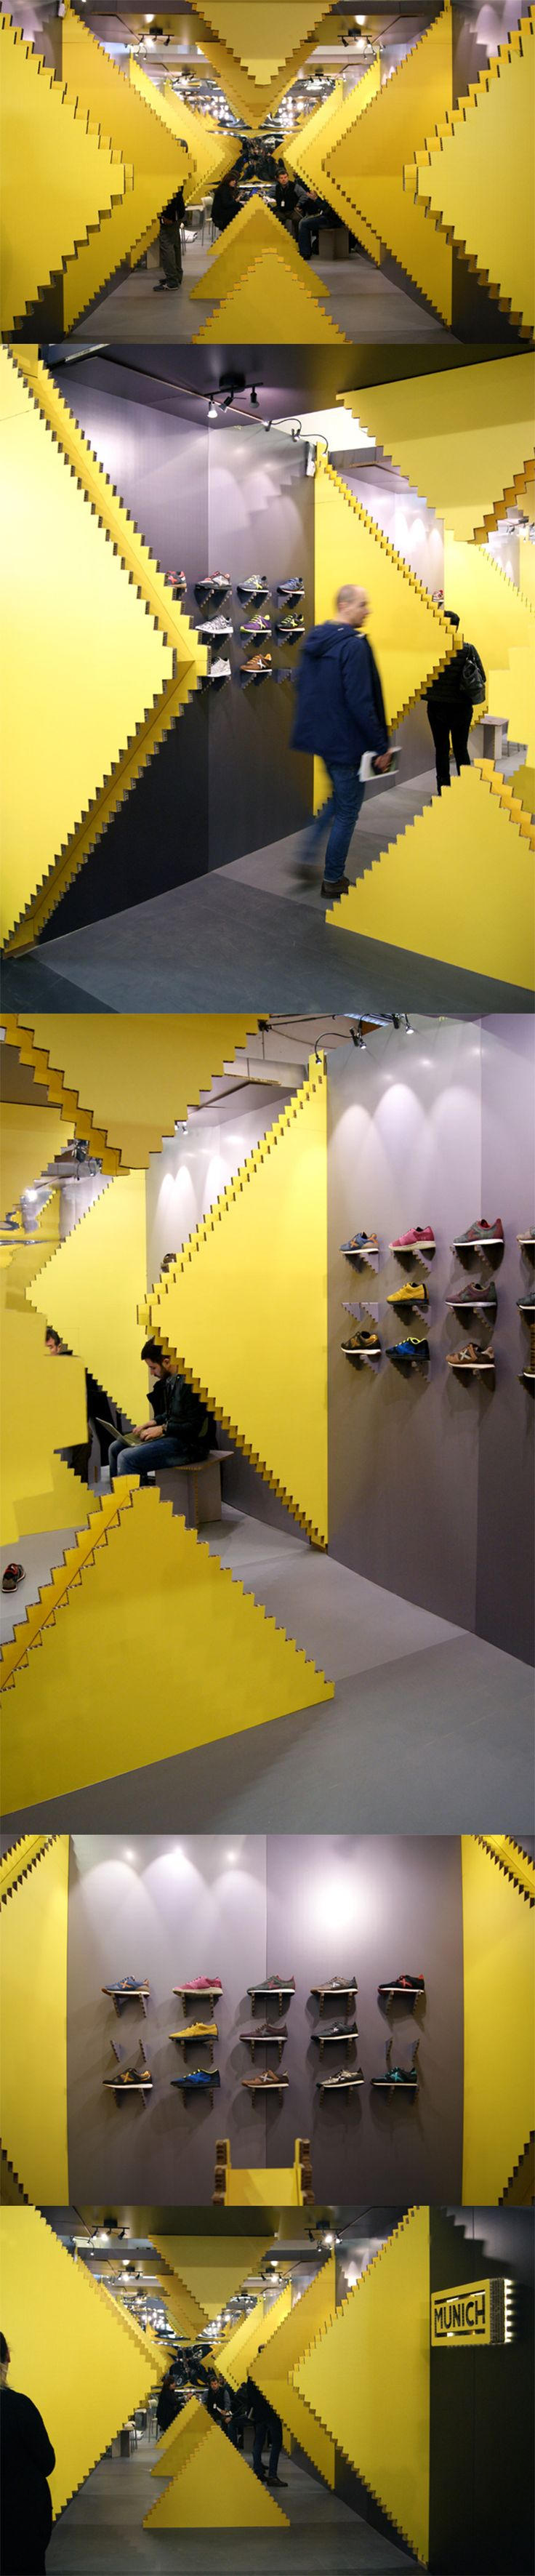 Pop Up Store Shop Brand Experience for Munich Shoes designed by Studio Animal + Eli Cayuela and produced in cardboard by Cartonlab. #popupstore #popupshop #brandexperience